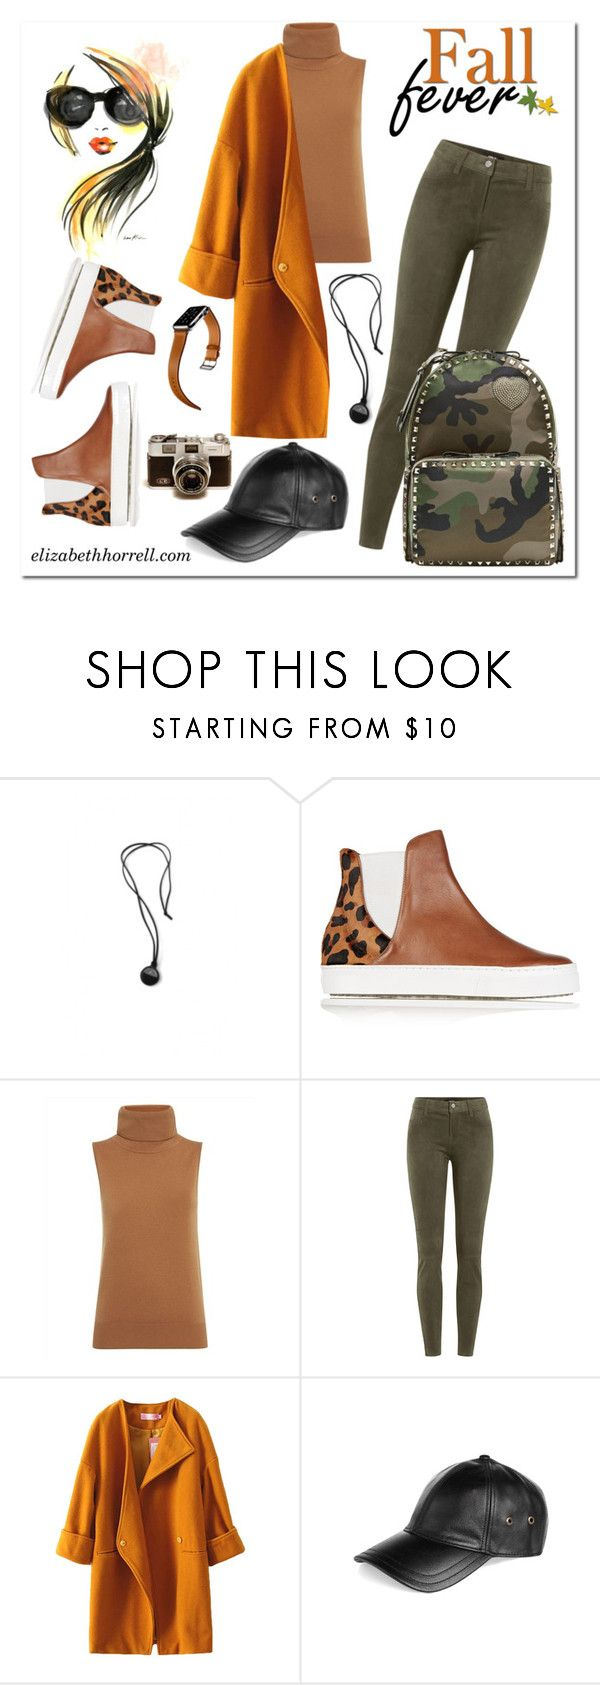 """""""LIZ"""" by elizabethhorrell liked on Polyvore featuring"""